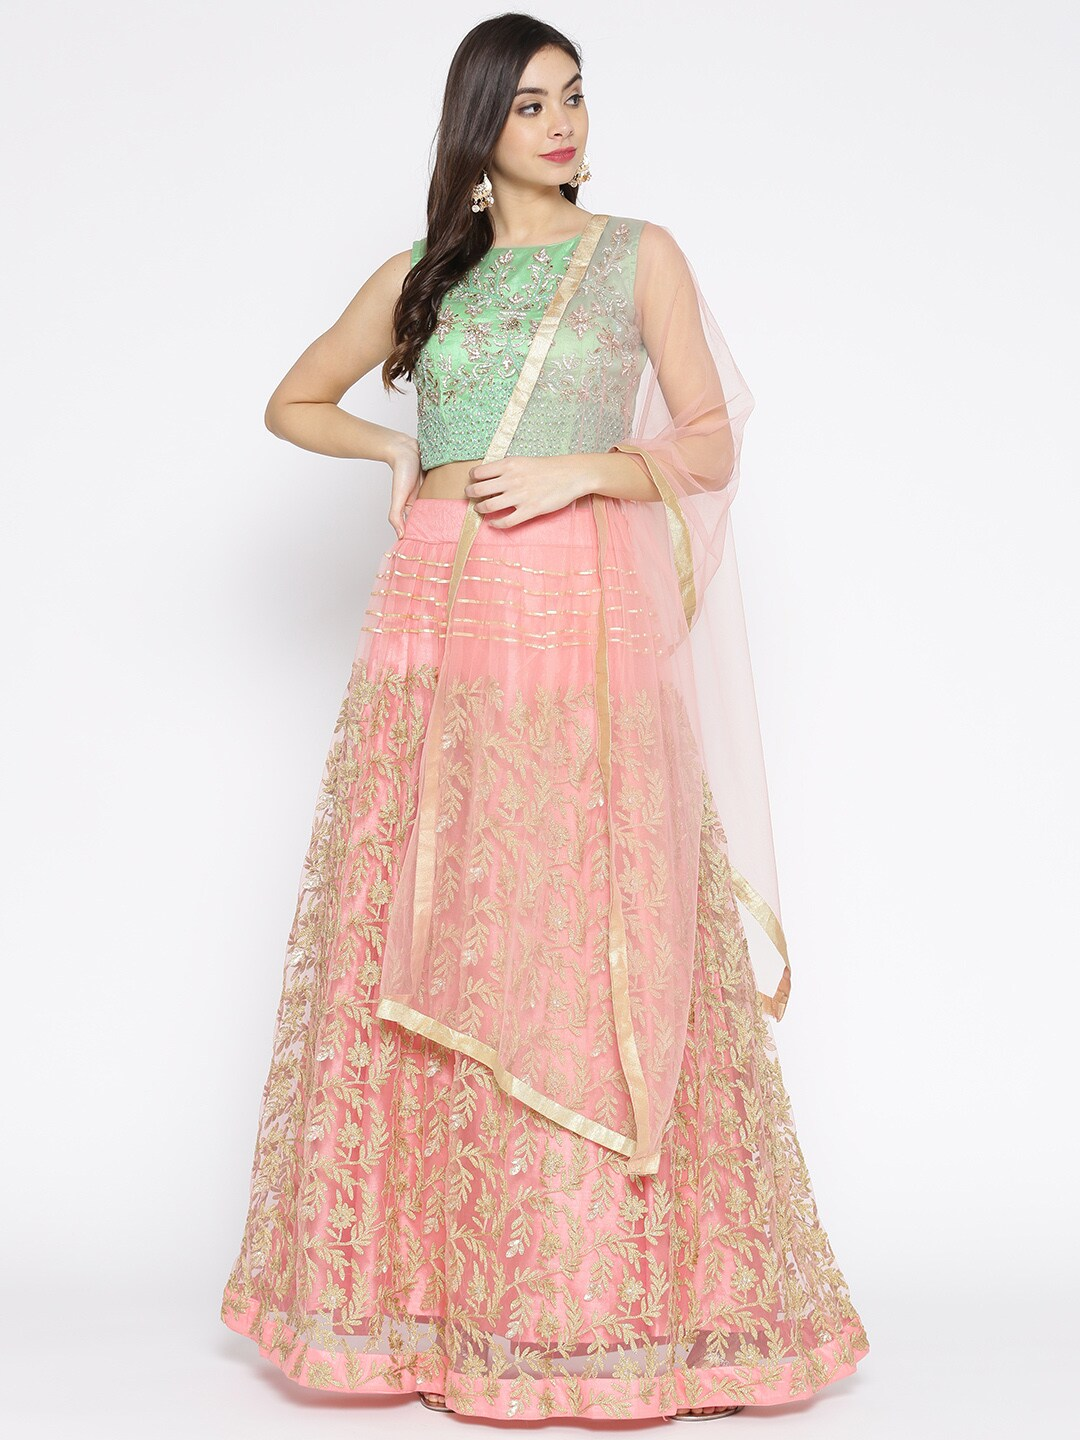 bf18f9c480d Chhabra 555 Green   Pink Embellished Made to Measure Lehenga   Blouse with  Dupatta